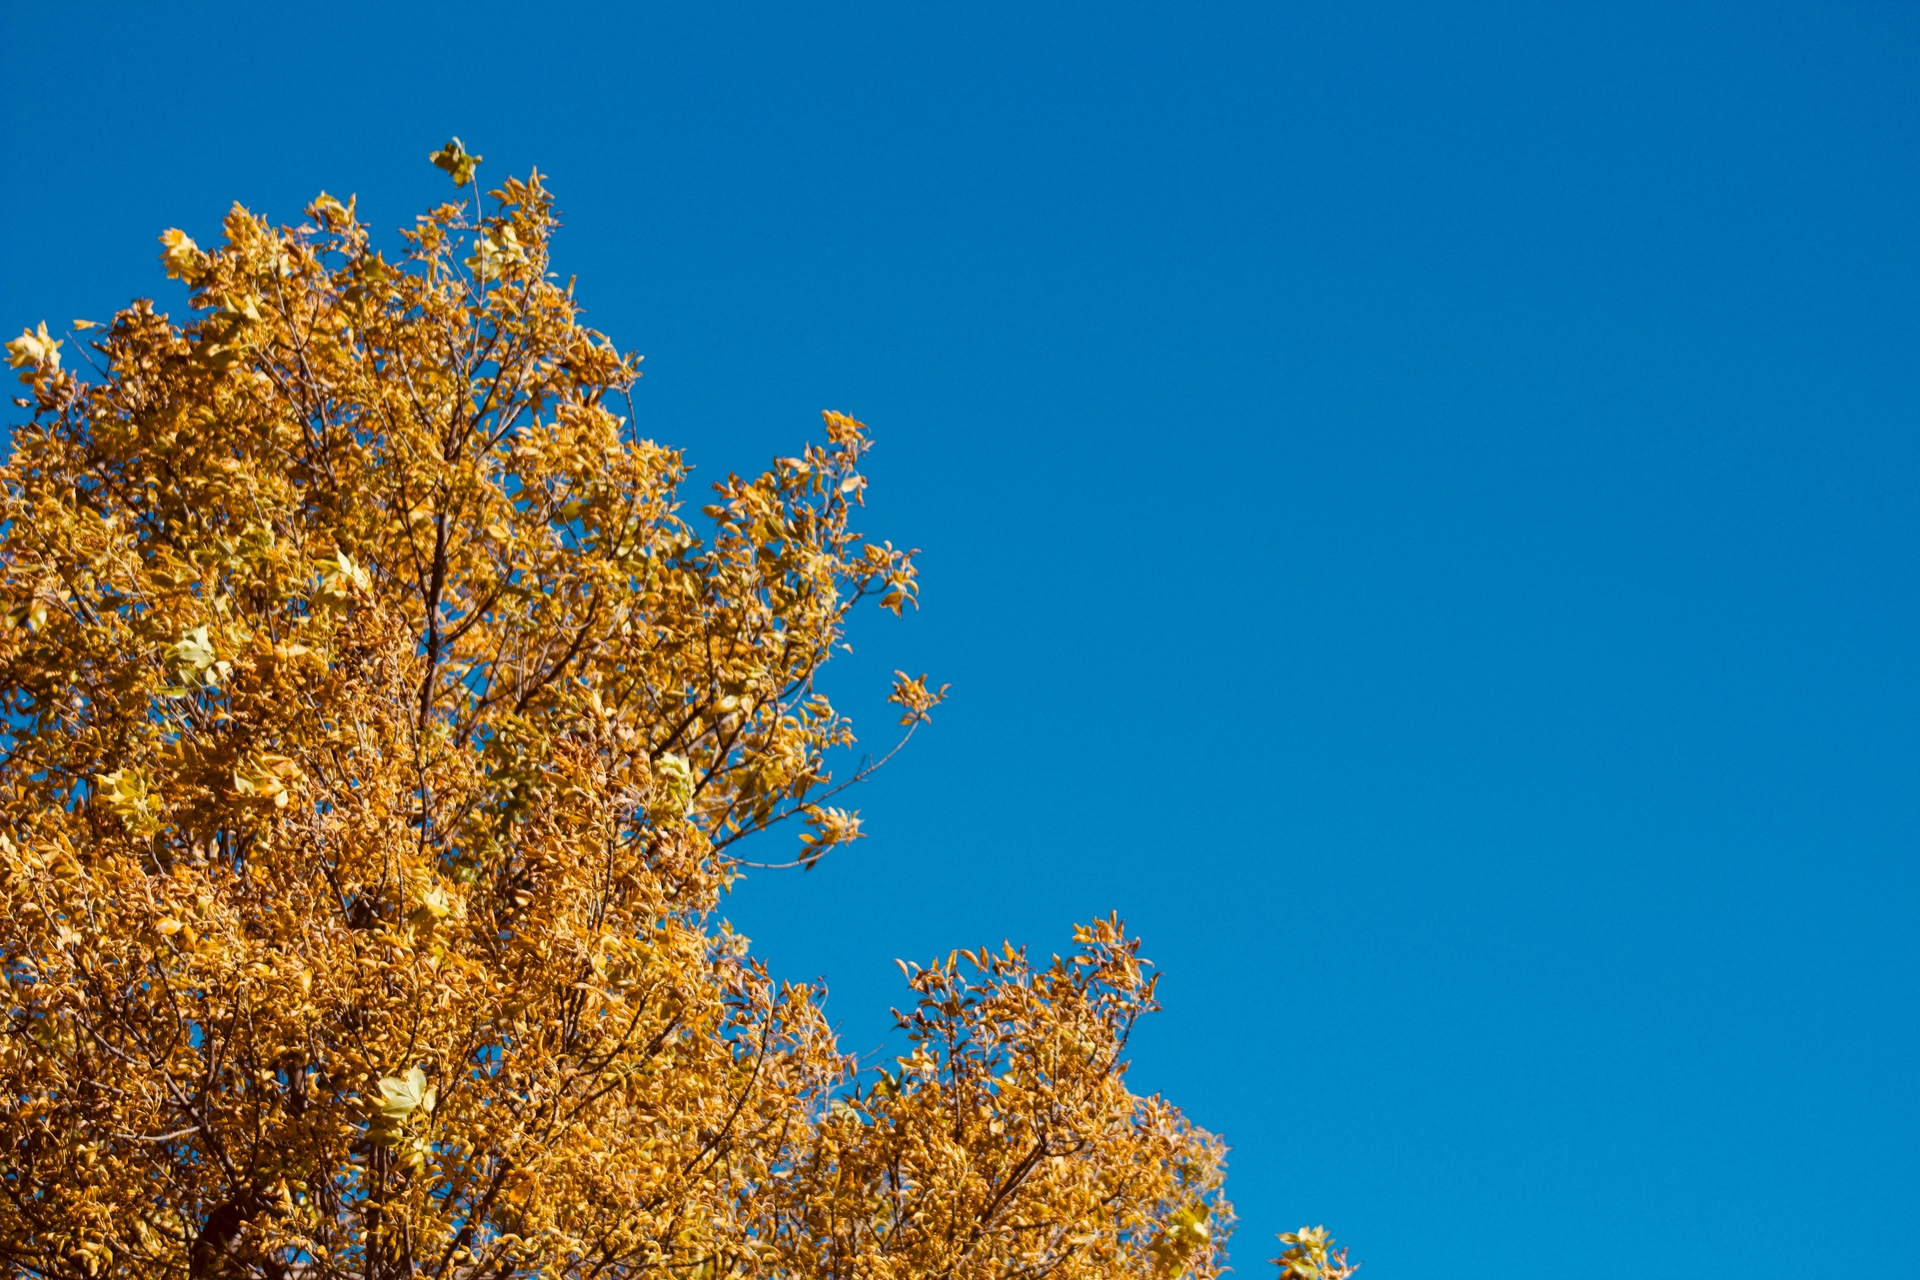 A tree with beautiful cinnamon-colored leaves against a vibrant autumn sky